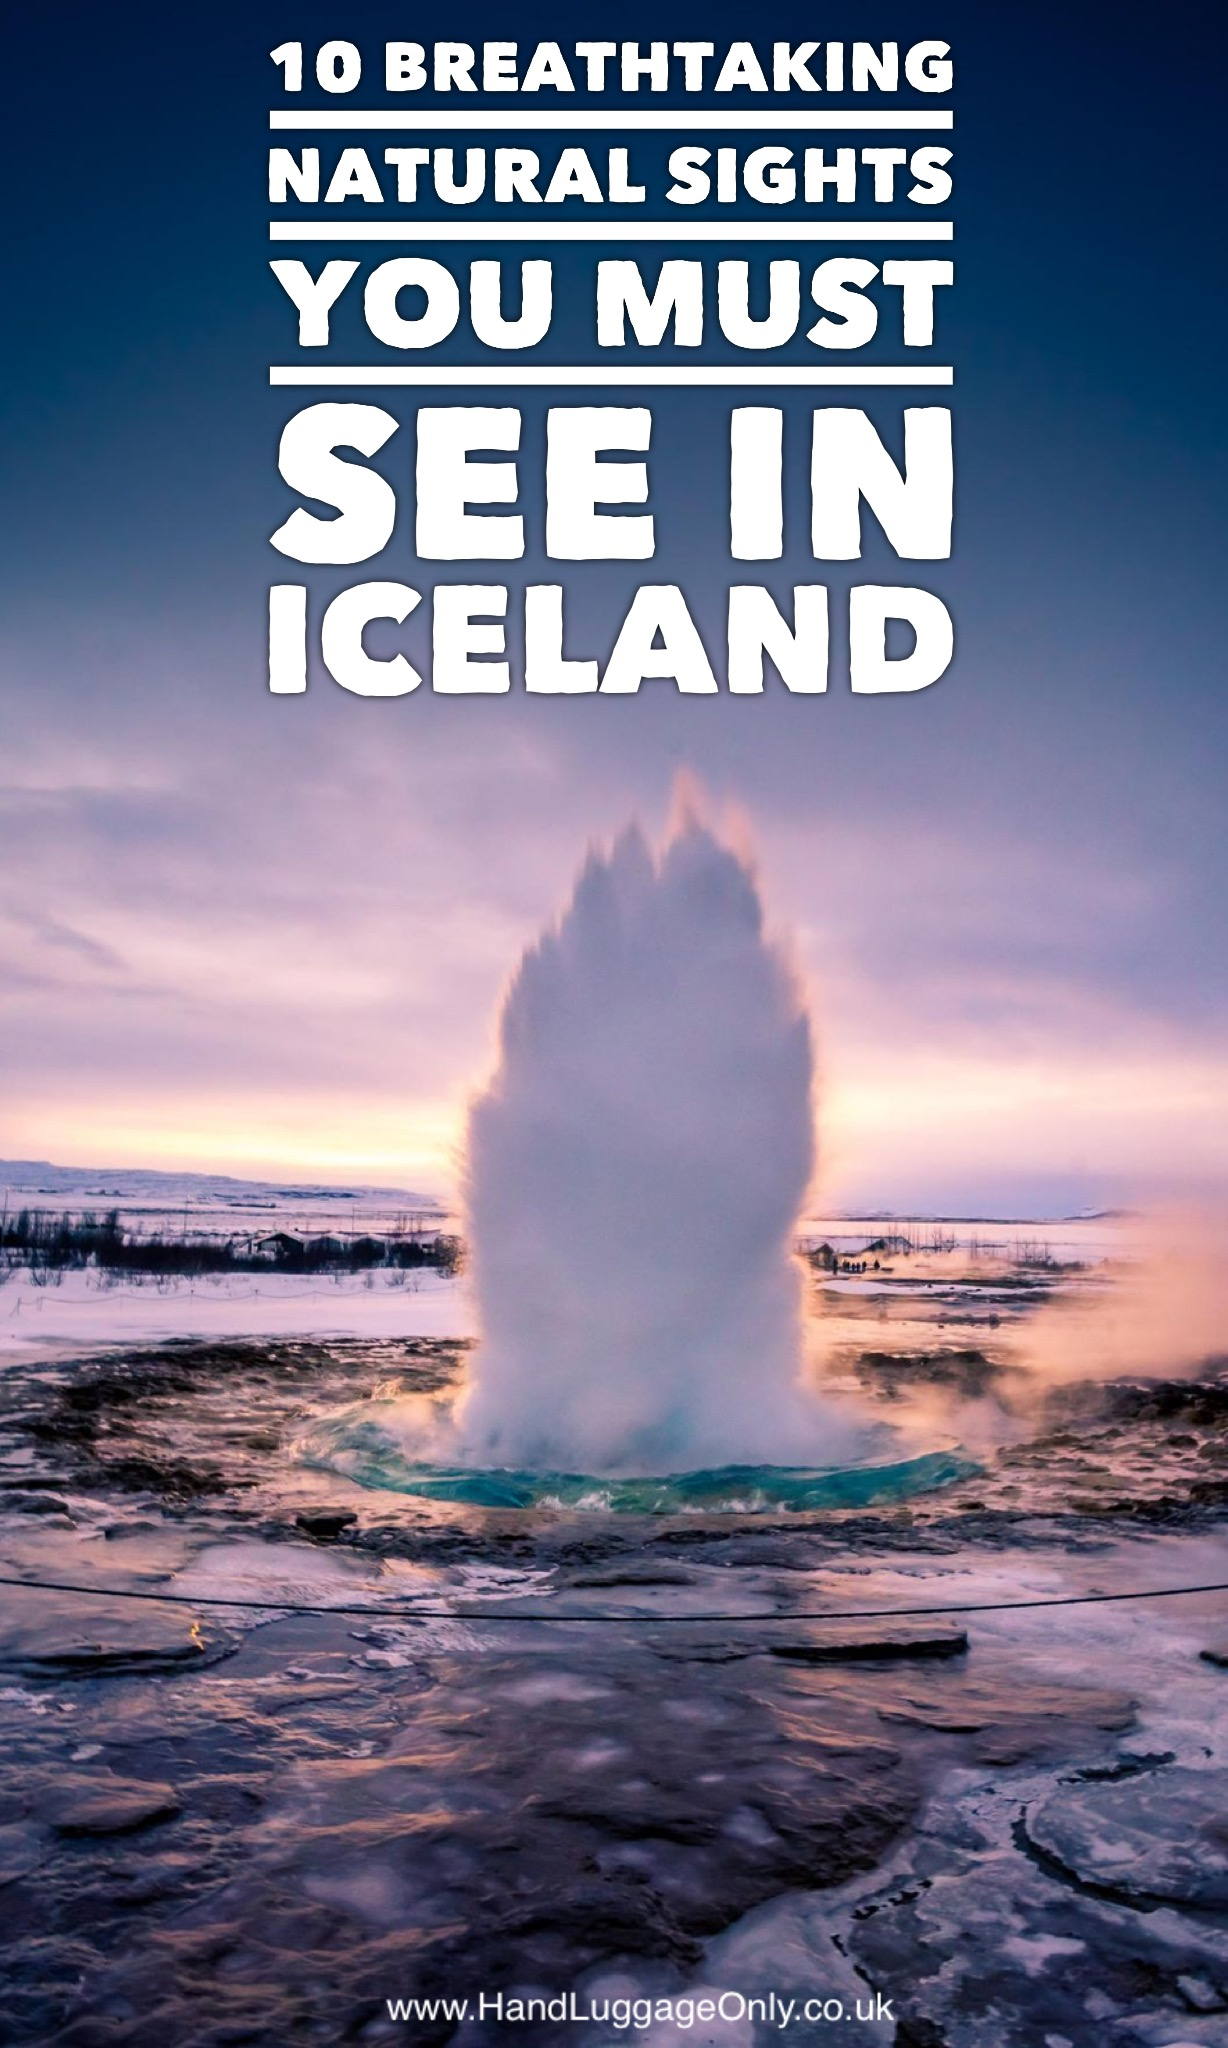 10 Breathtaking Natural Sights You'll Want To Explore In Iceland (1)